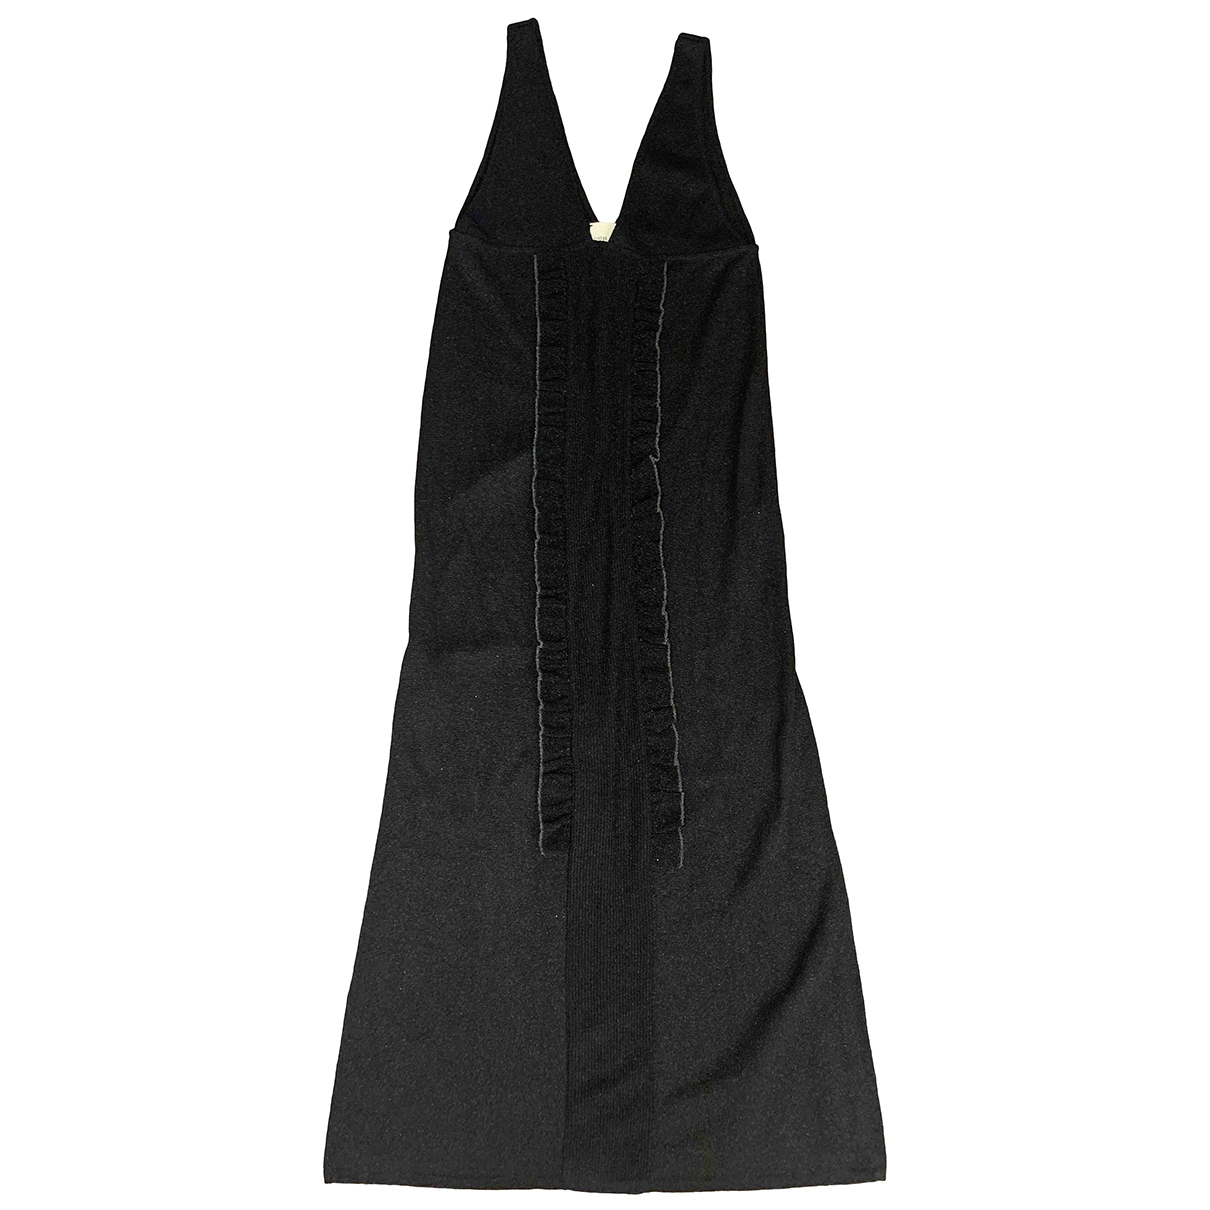 Circus Hotel \N Black dress for Women 40 FR